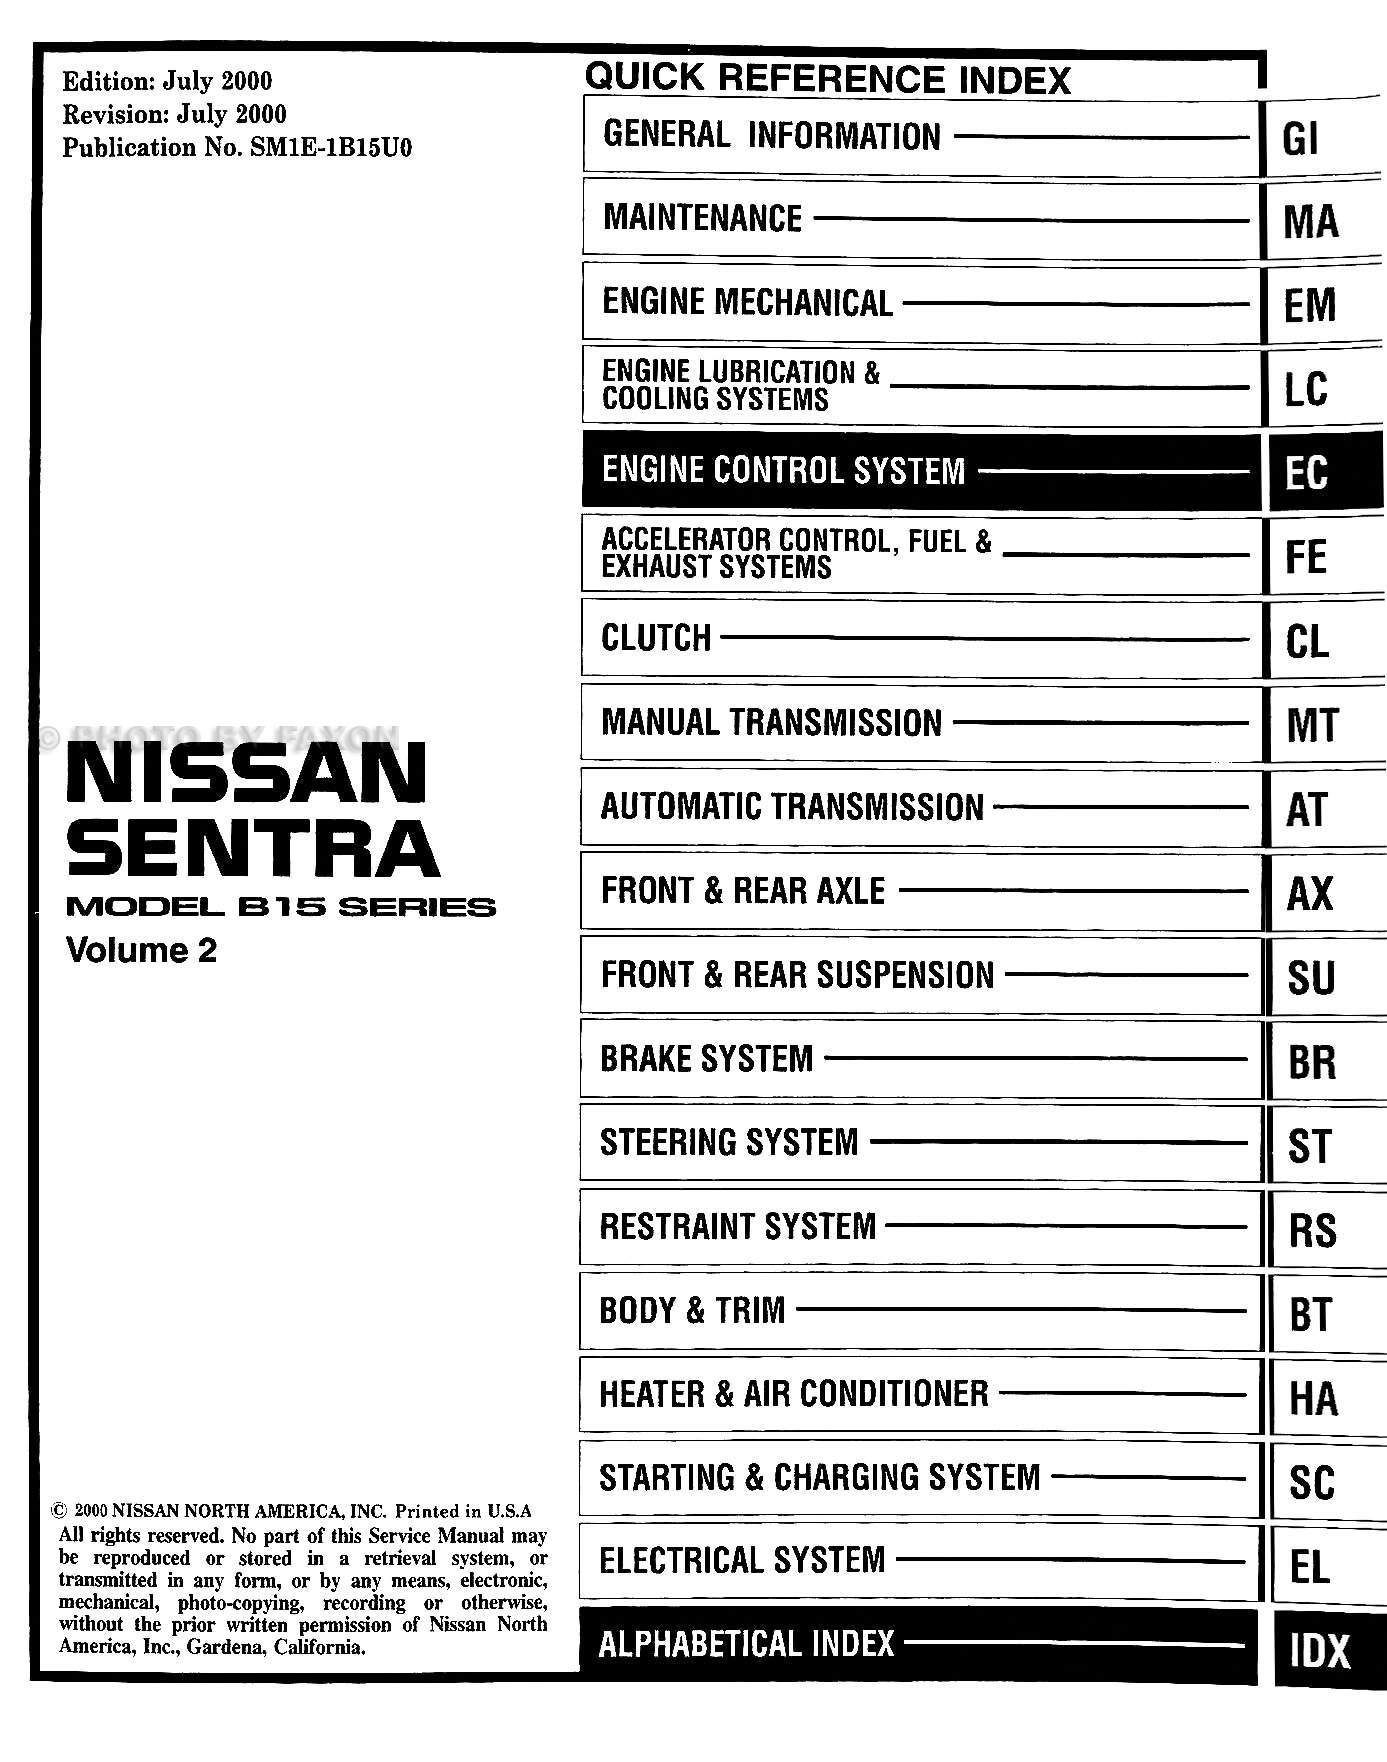 nissan versa 2008 service manual open source user manual u2022 rh dramatic varieties com nissan skyline r33 workshop manual free download nissan silvia workshop manual